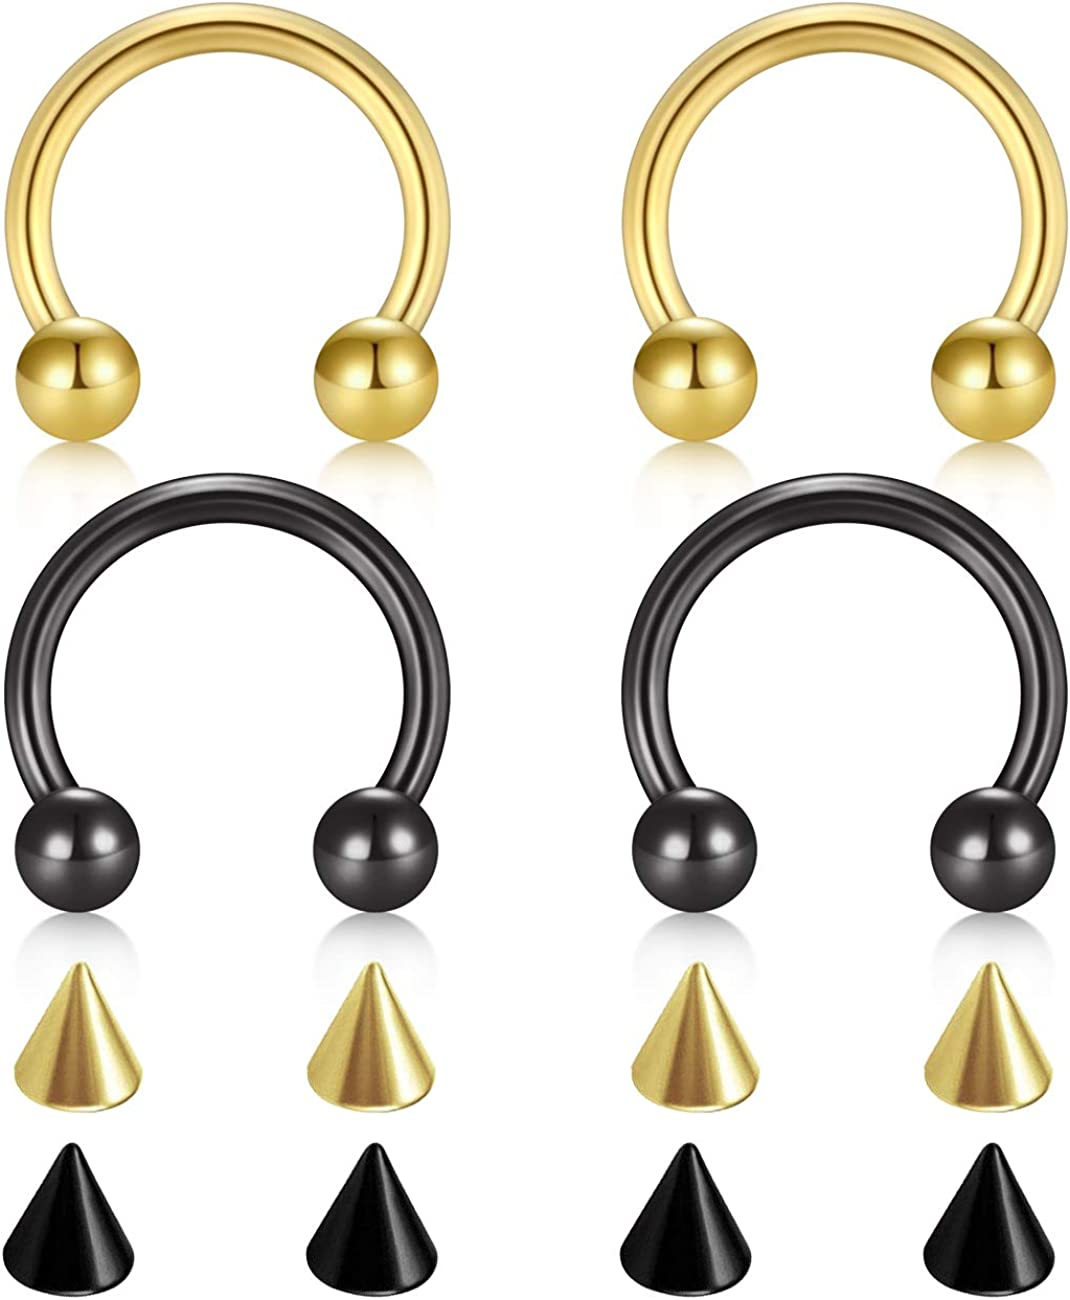 D.Bella 14G 16G 18G 20G Surgical Steel Nose Septum Horseshoe Hoop Eyebrow Lip Navel Belly Nipple Piercing Ring 8mm 10mm Helix Tragus Daith Rook Earrings w Replacement Spikes